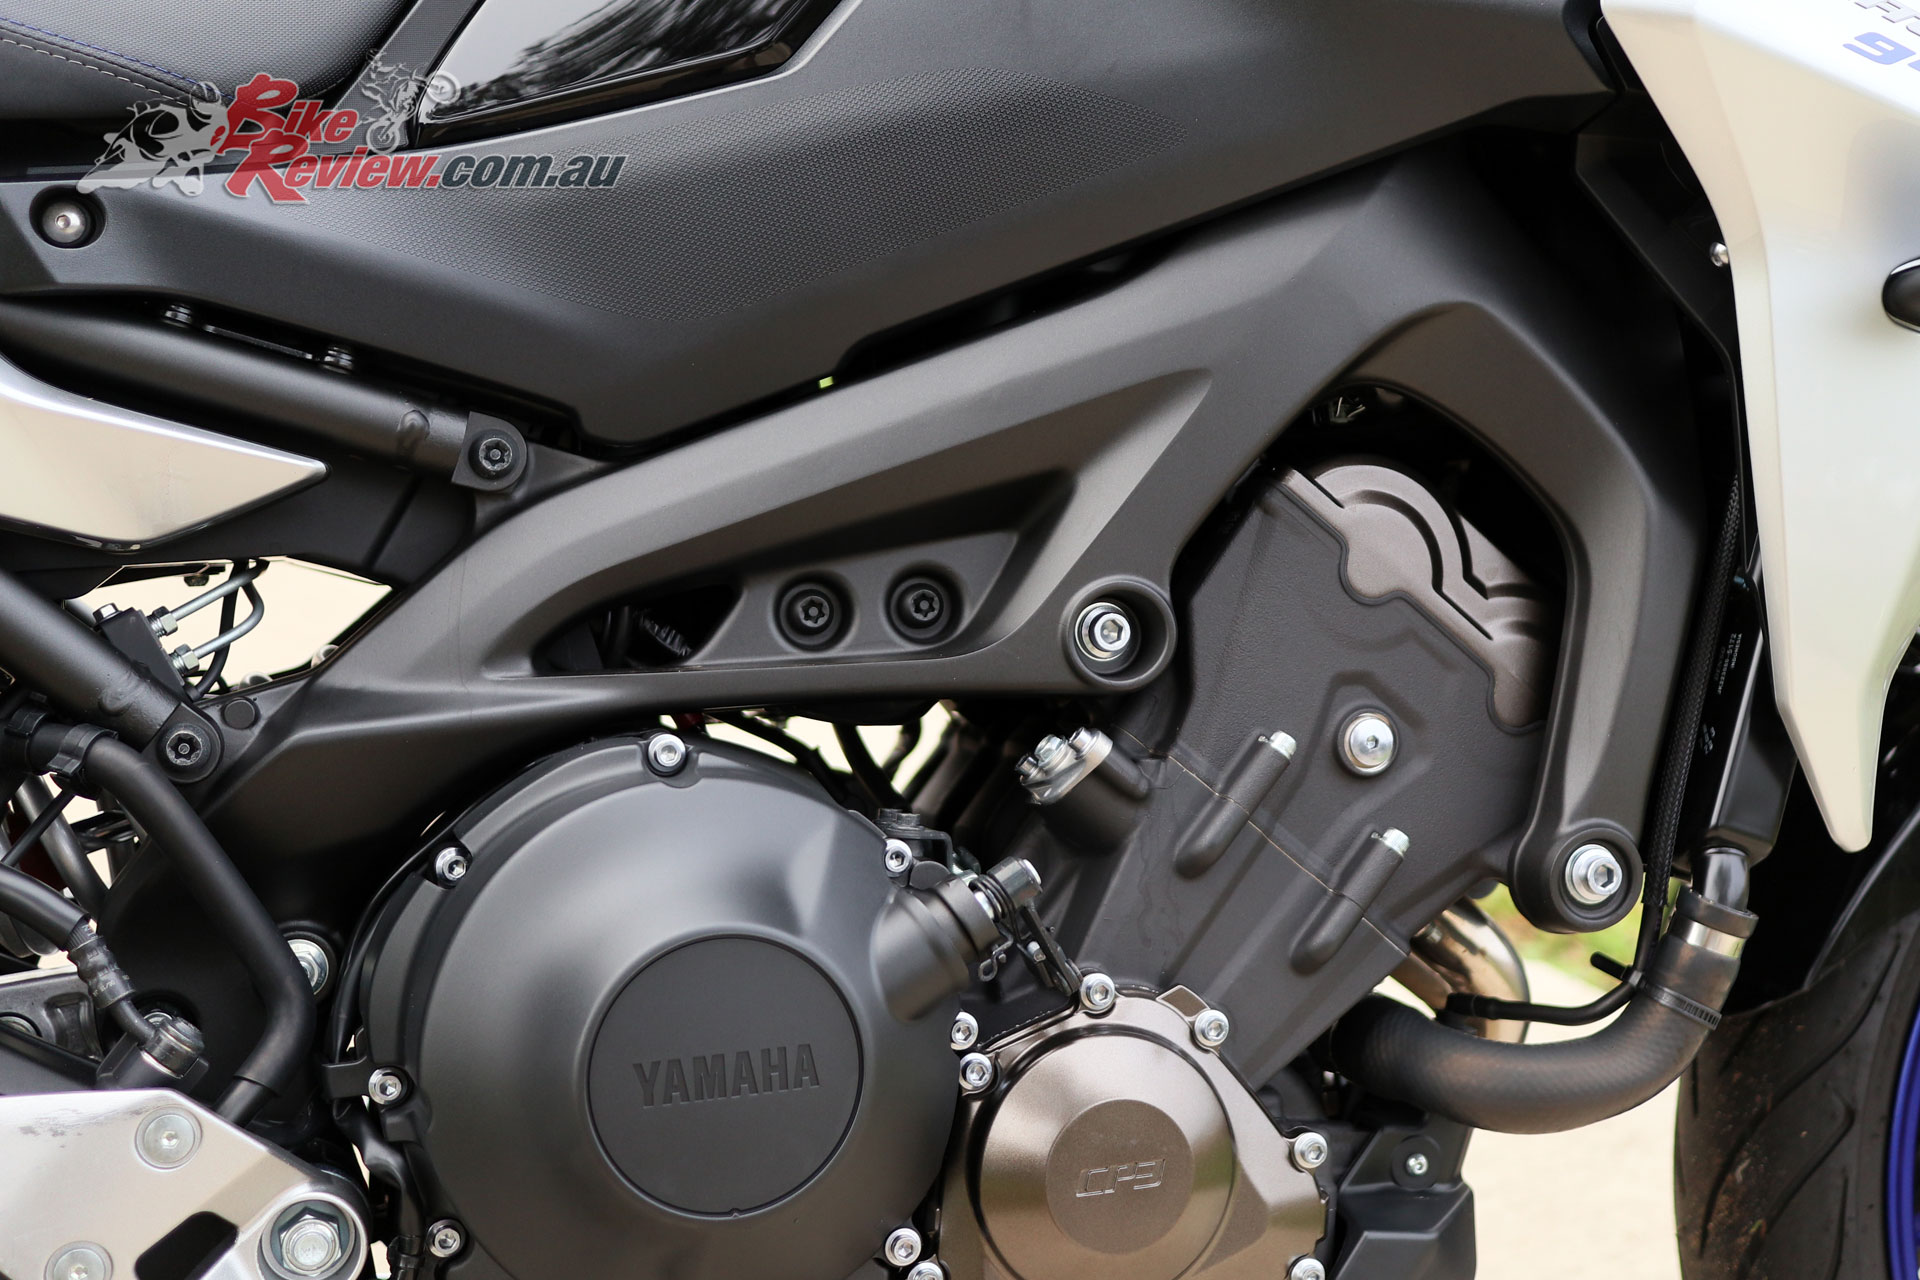 The famous MT-09 847cc triple-cylinder is also put to good use in the Tracer 900 GT